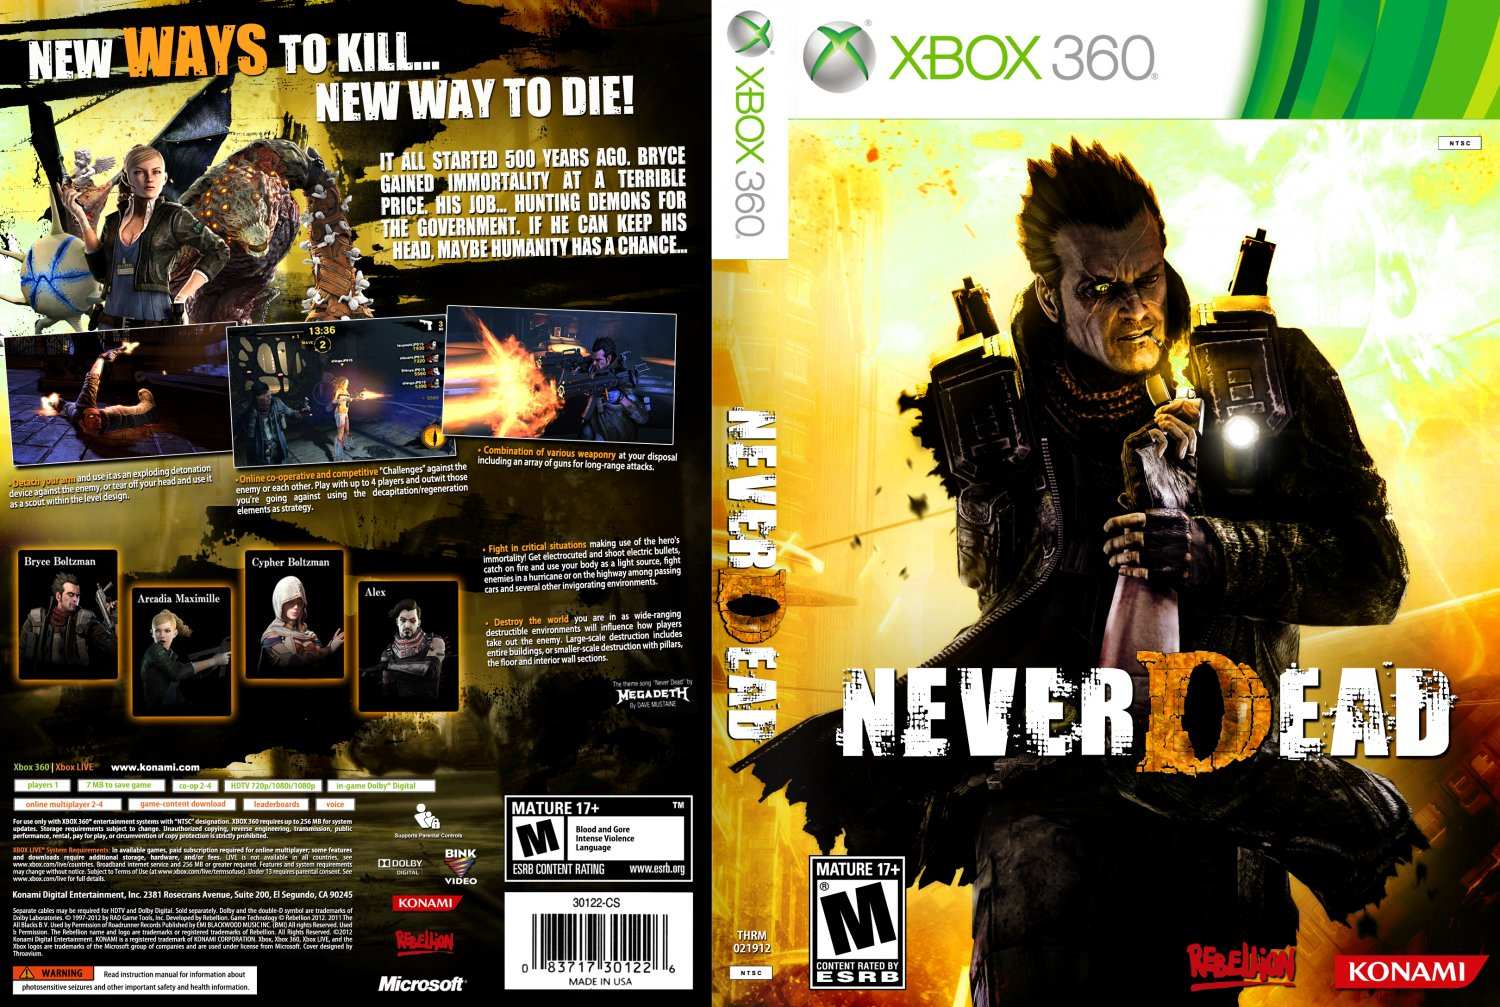 NeverDead - XBOX 360 Game Covers - 2012-thrm-neverdead ...